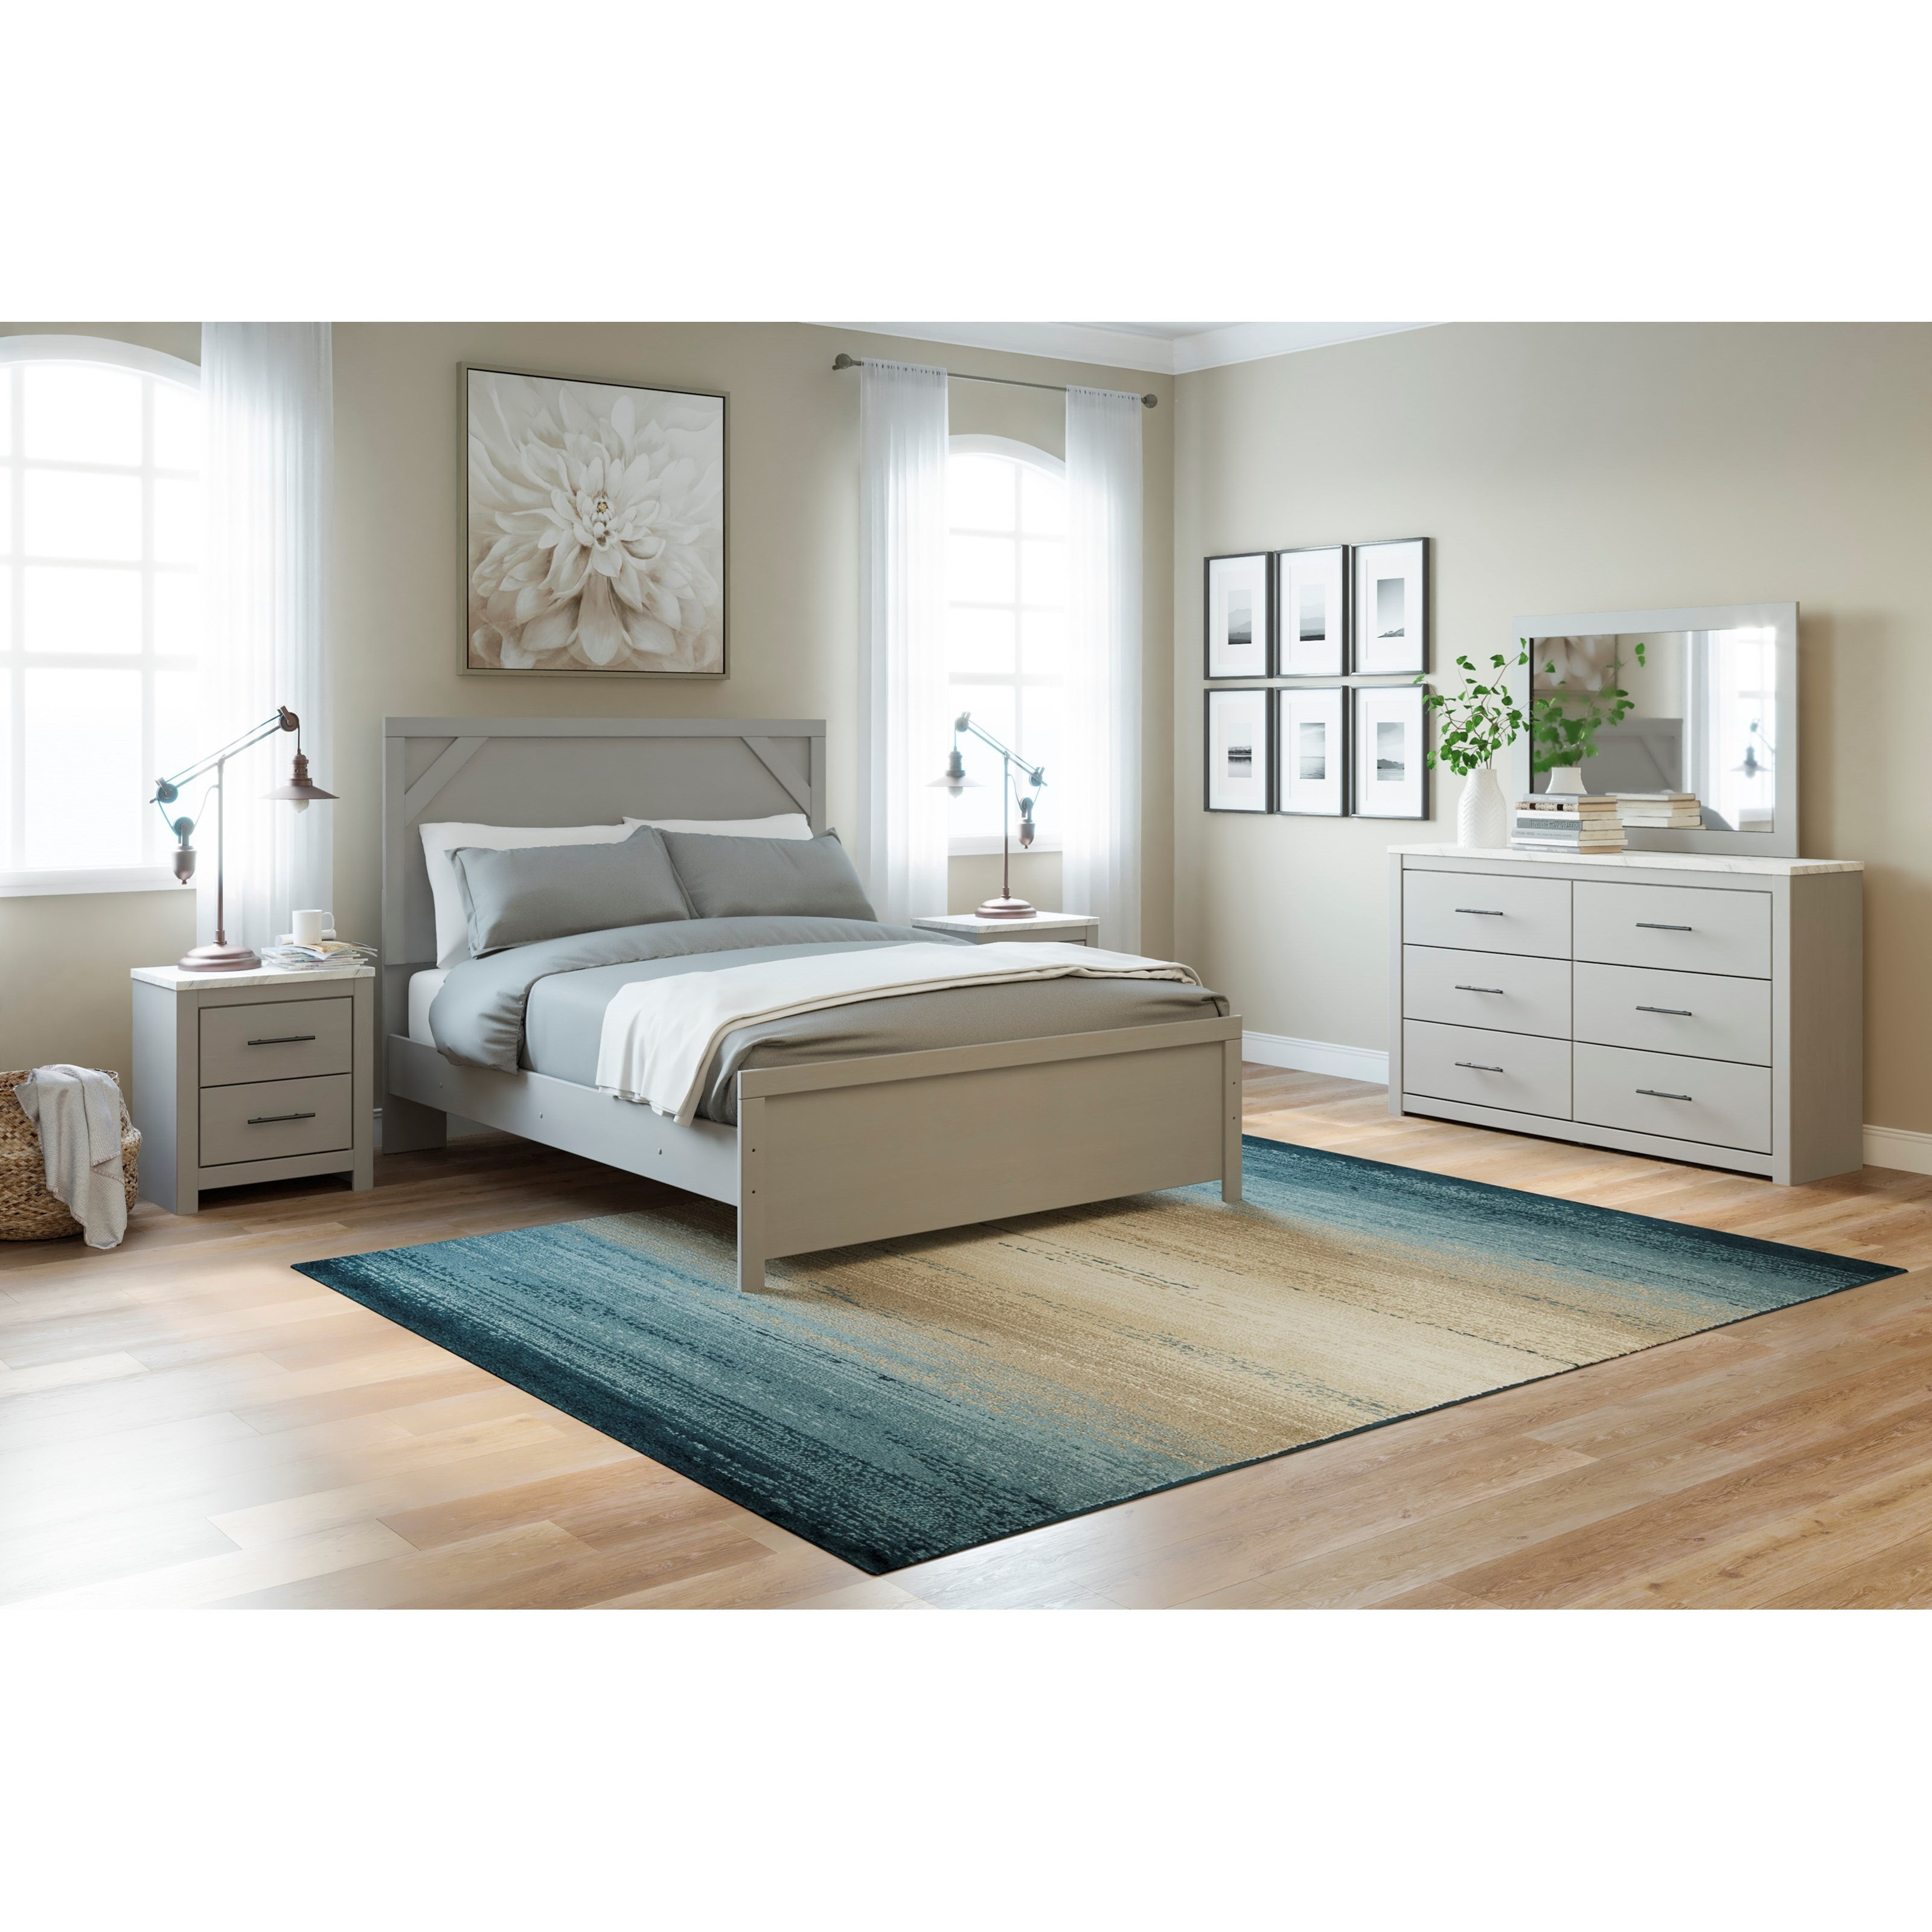 Cottenburg Queen Bedroom Group by Signature Design by Ashley at Northeast Factory Direct